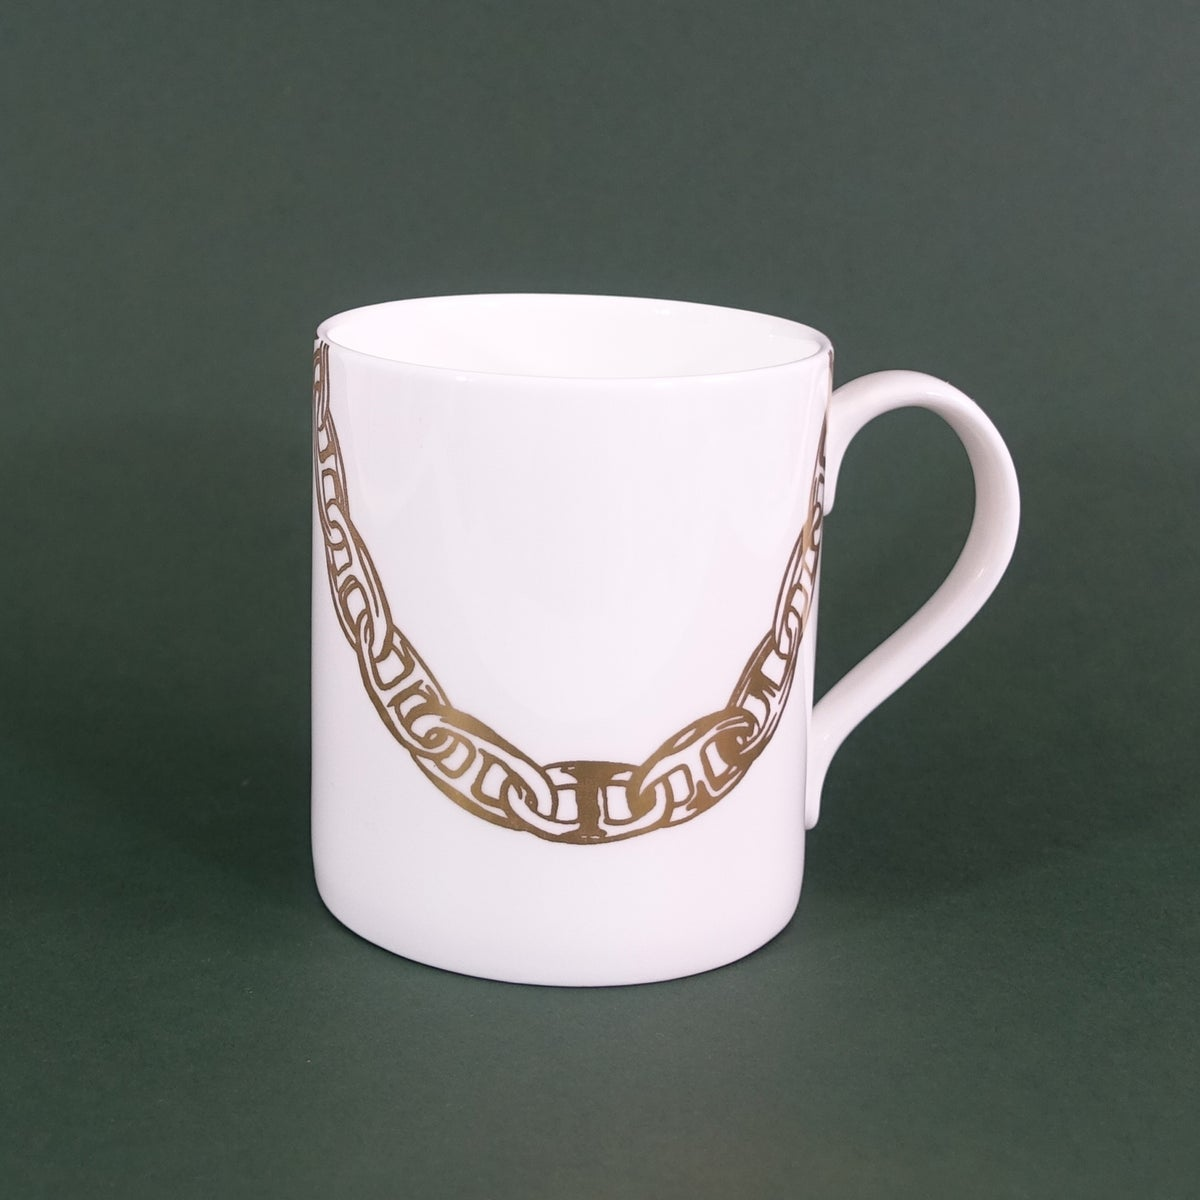 Image of Bling Mug